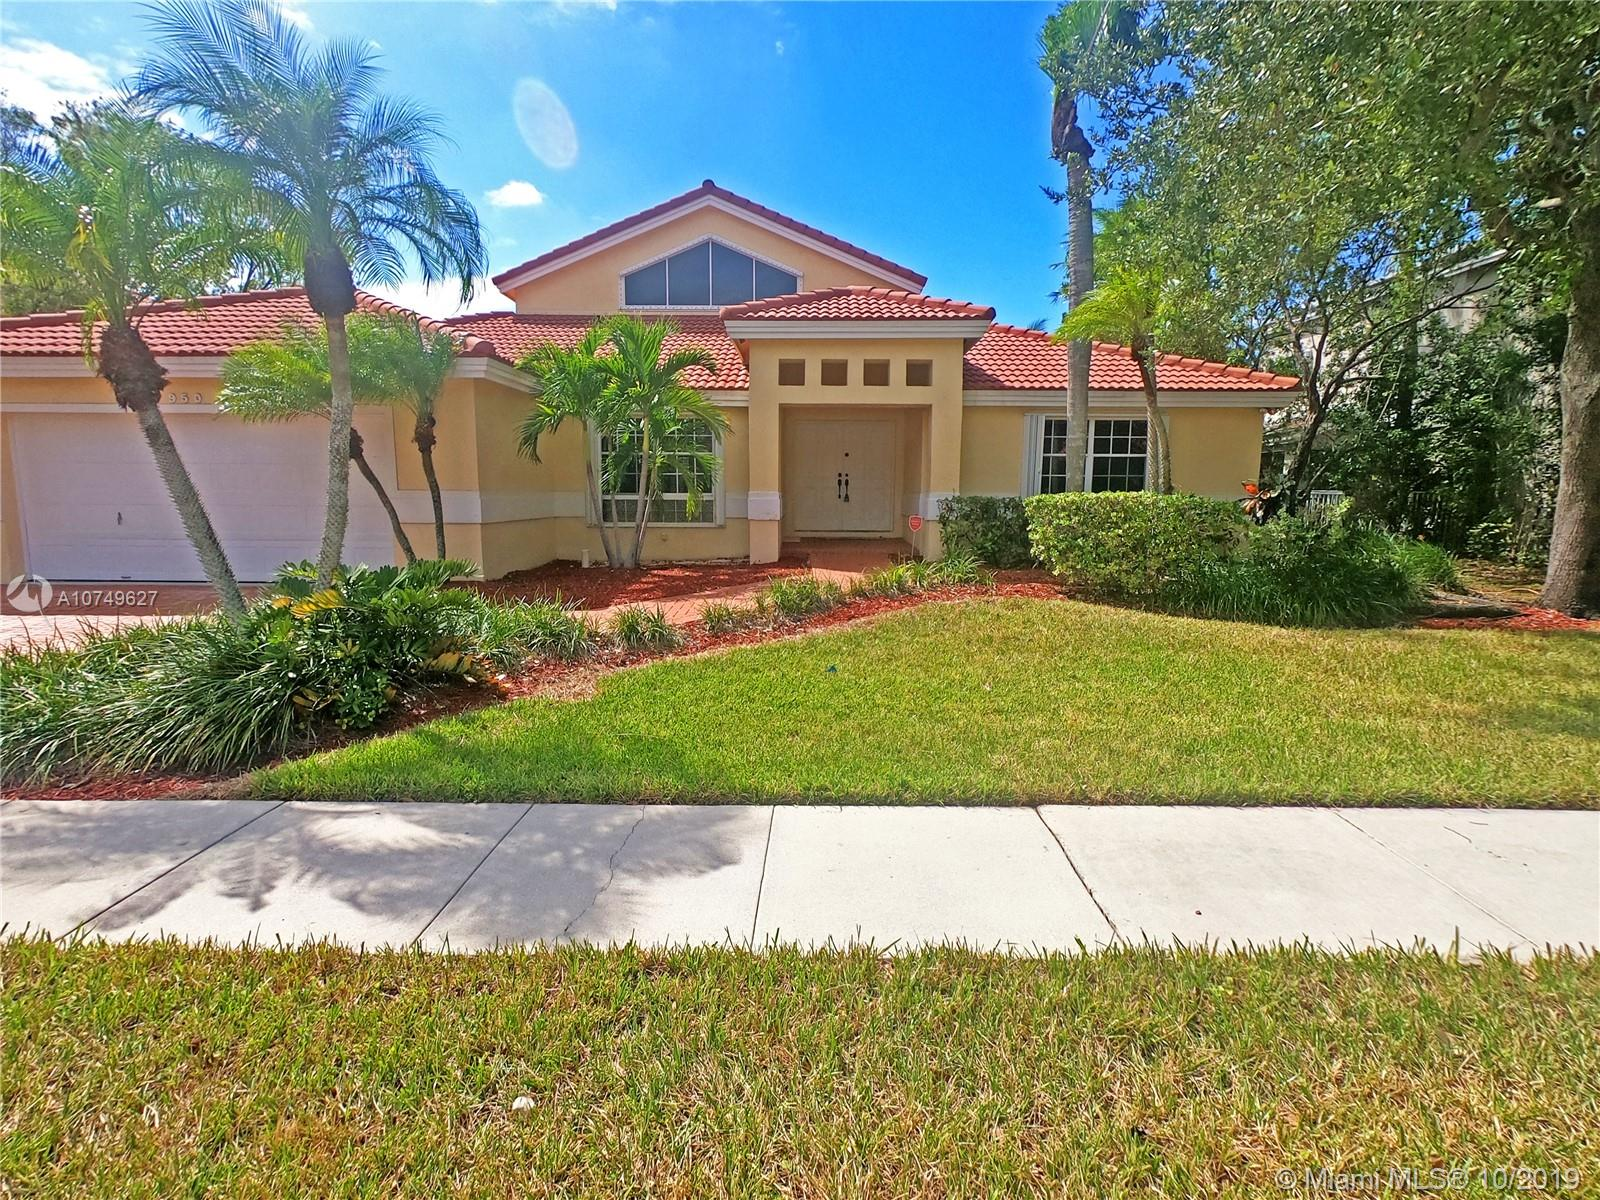 GREAT OPPORTUNITY TO OWN A TURNKEY HOME WITH LAKE & POOL IN THE VERY DESIRABLE COMMUNITY OF CHAPEL TRAIL ONE STORY WITH GREAT FLOOR PLAN. CERAMIC FLOORS THRU OUT. BEAUTIFUL KITCHEN WITH DARK CABINETS & RICH GRANITE COUNTERTOPS. FABULOUS VIEWS GREET YOU AS YOU WALK IN THE DOOR OF POOL & LAKE. REMODELED BATHS AS WELL. EASY ACCESS TO ALL SHOPPING & HIGHWAYS. CALL L/A FOR EASY